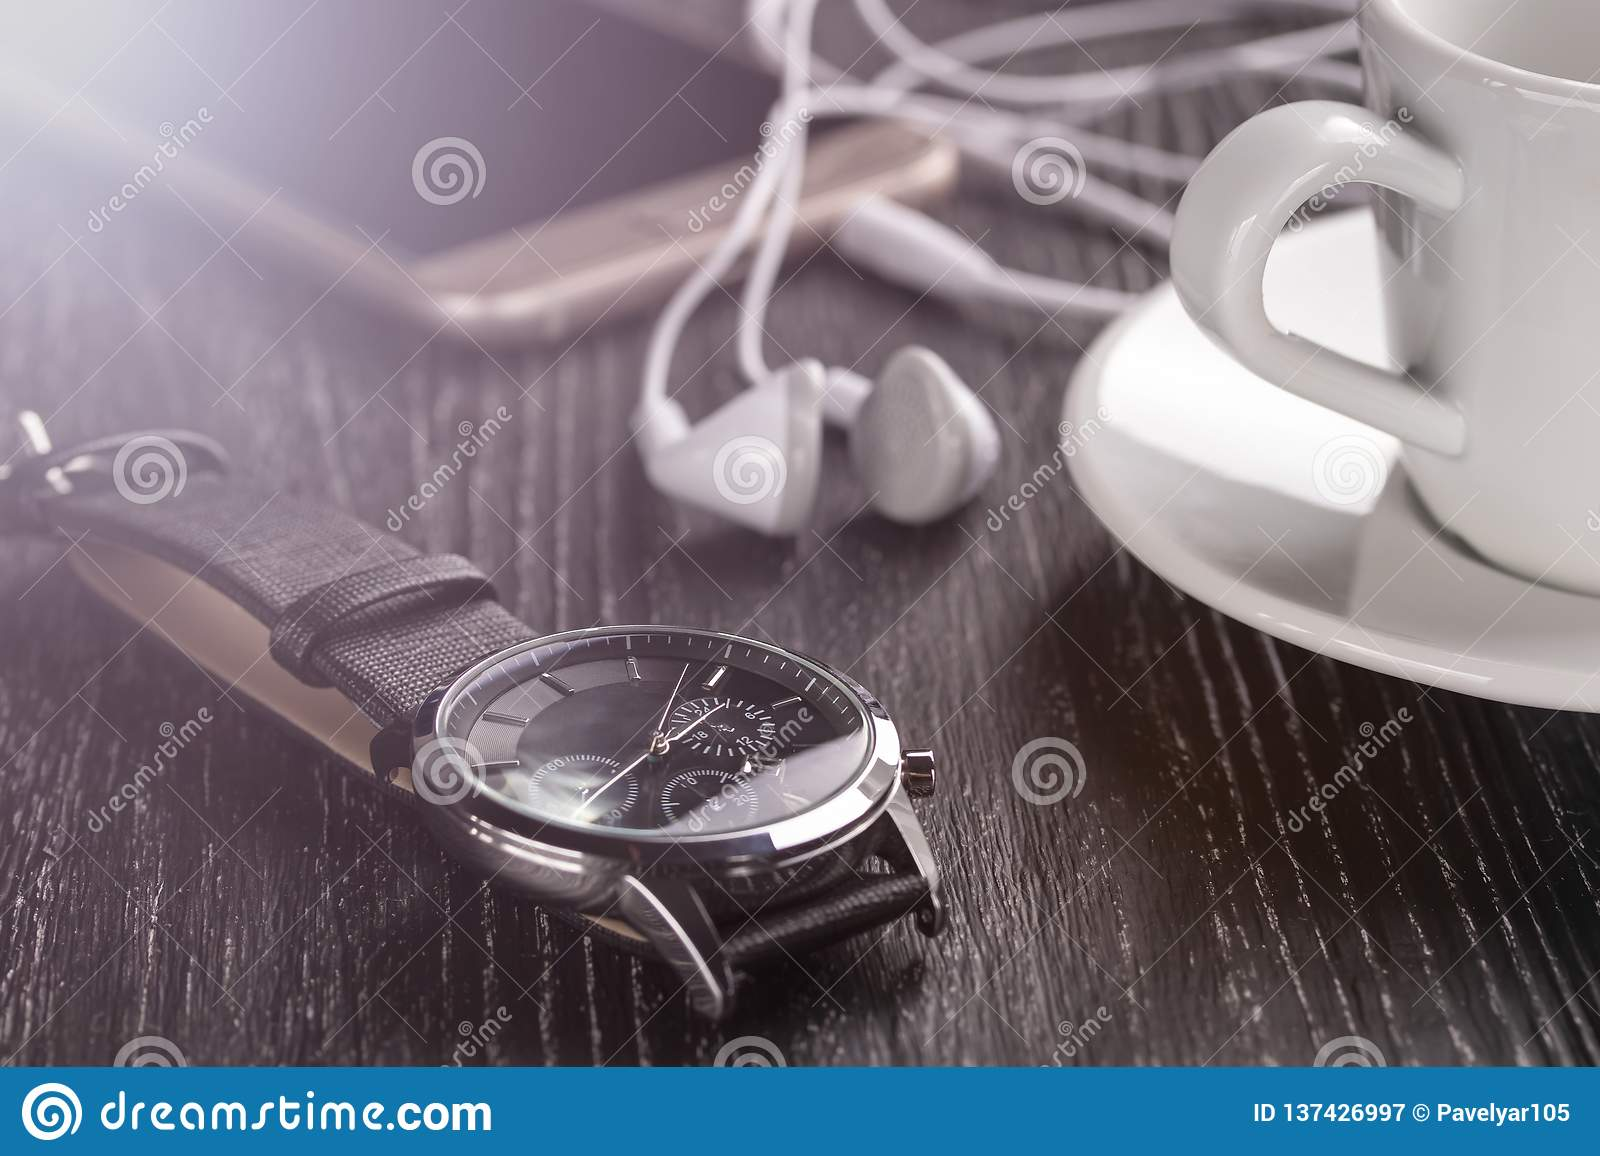 Wrist watch and mobile phone with headphones and a cup of coffee on a dark wooden table